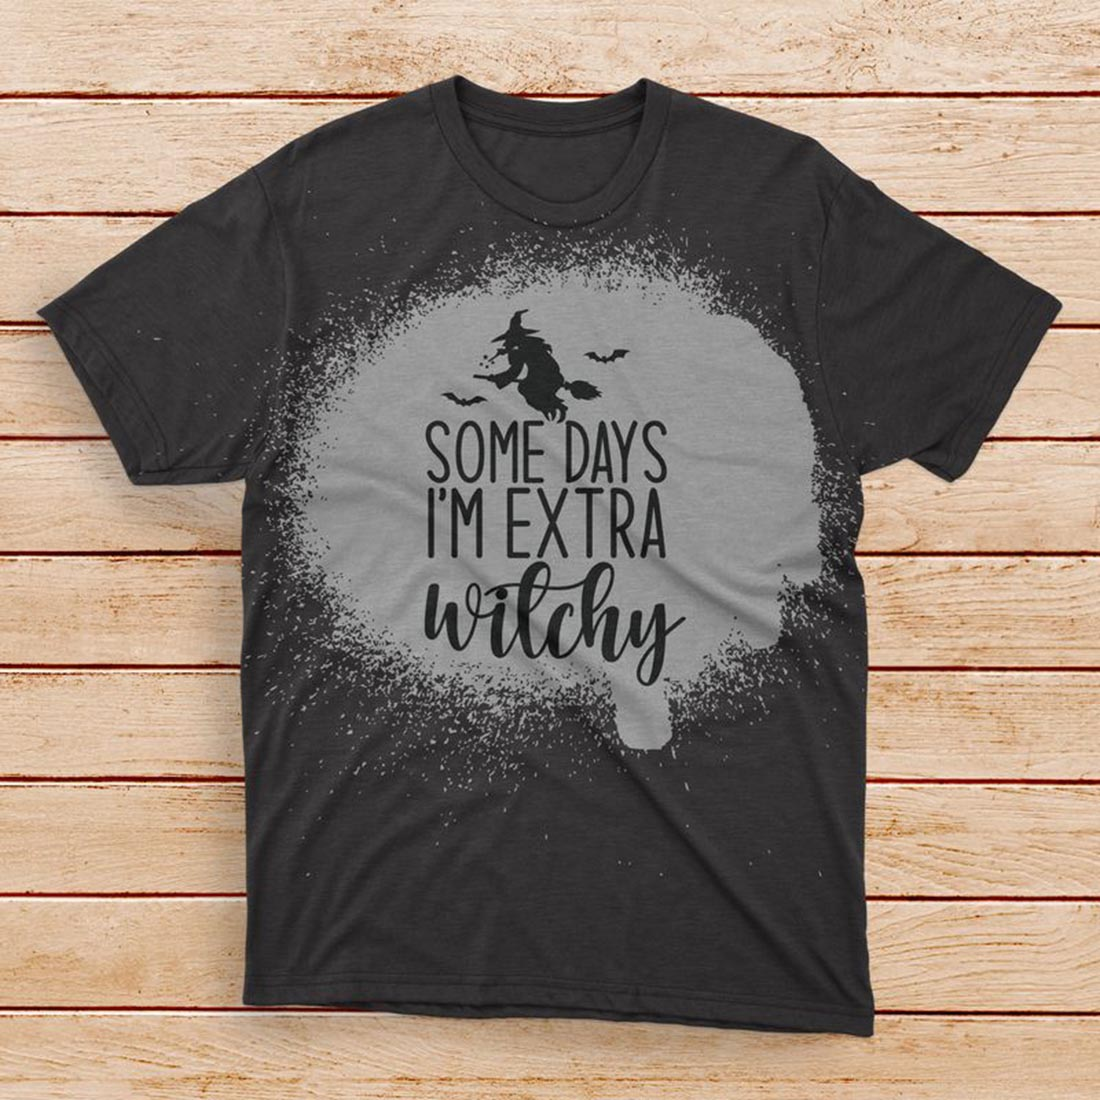 Some Days I'm Extra Witchy Bleached T-shirt